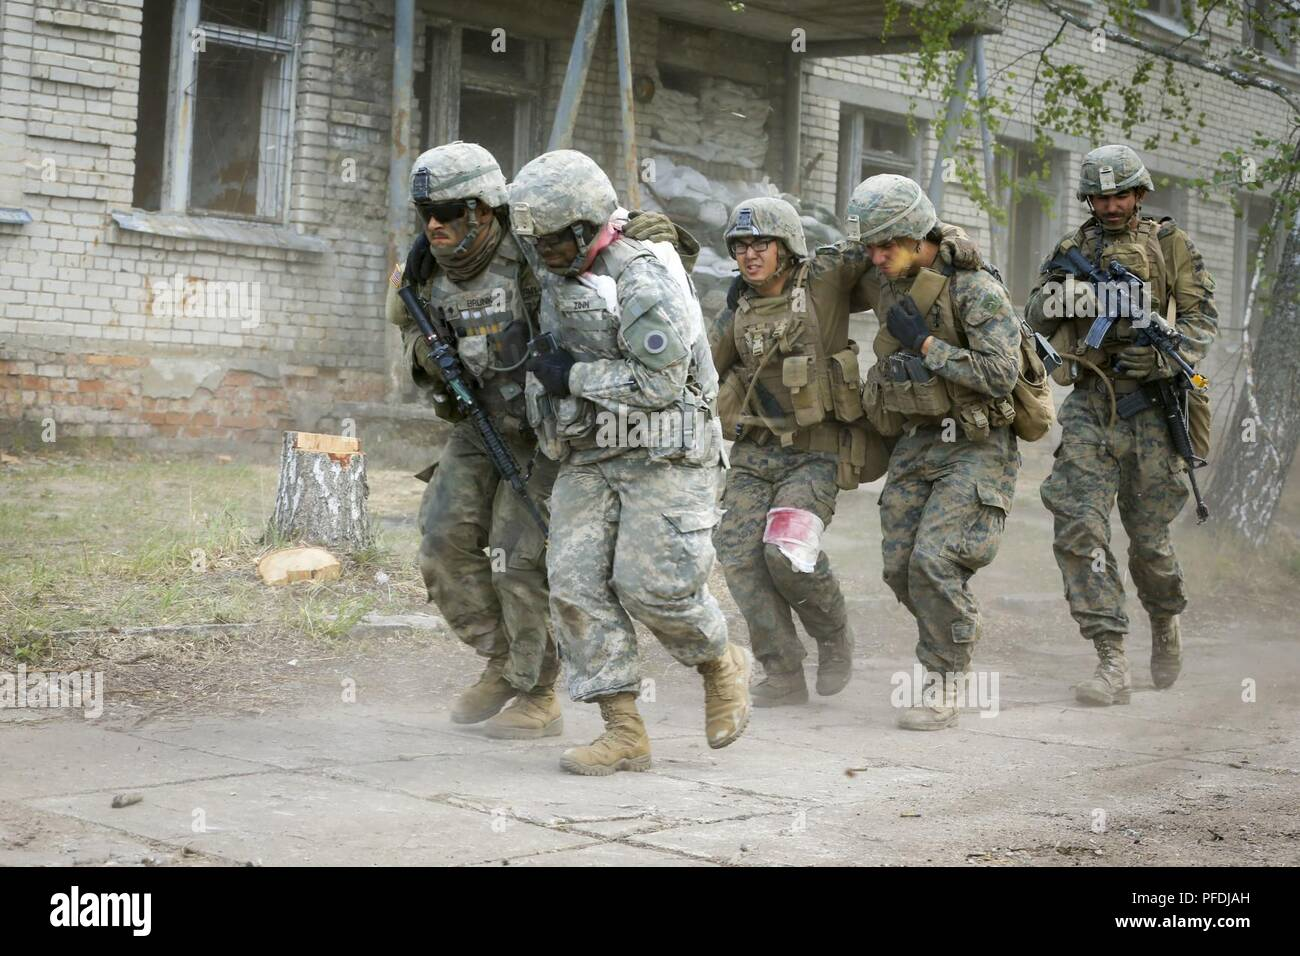 U S Army Sol Rs And U S Marines From 1st Battalion 6th Marines Evacuate Notional Casualties During Exercise Saber Strike 18 In Skrunda Latvia June